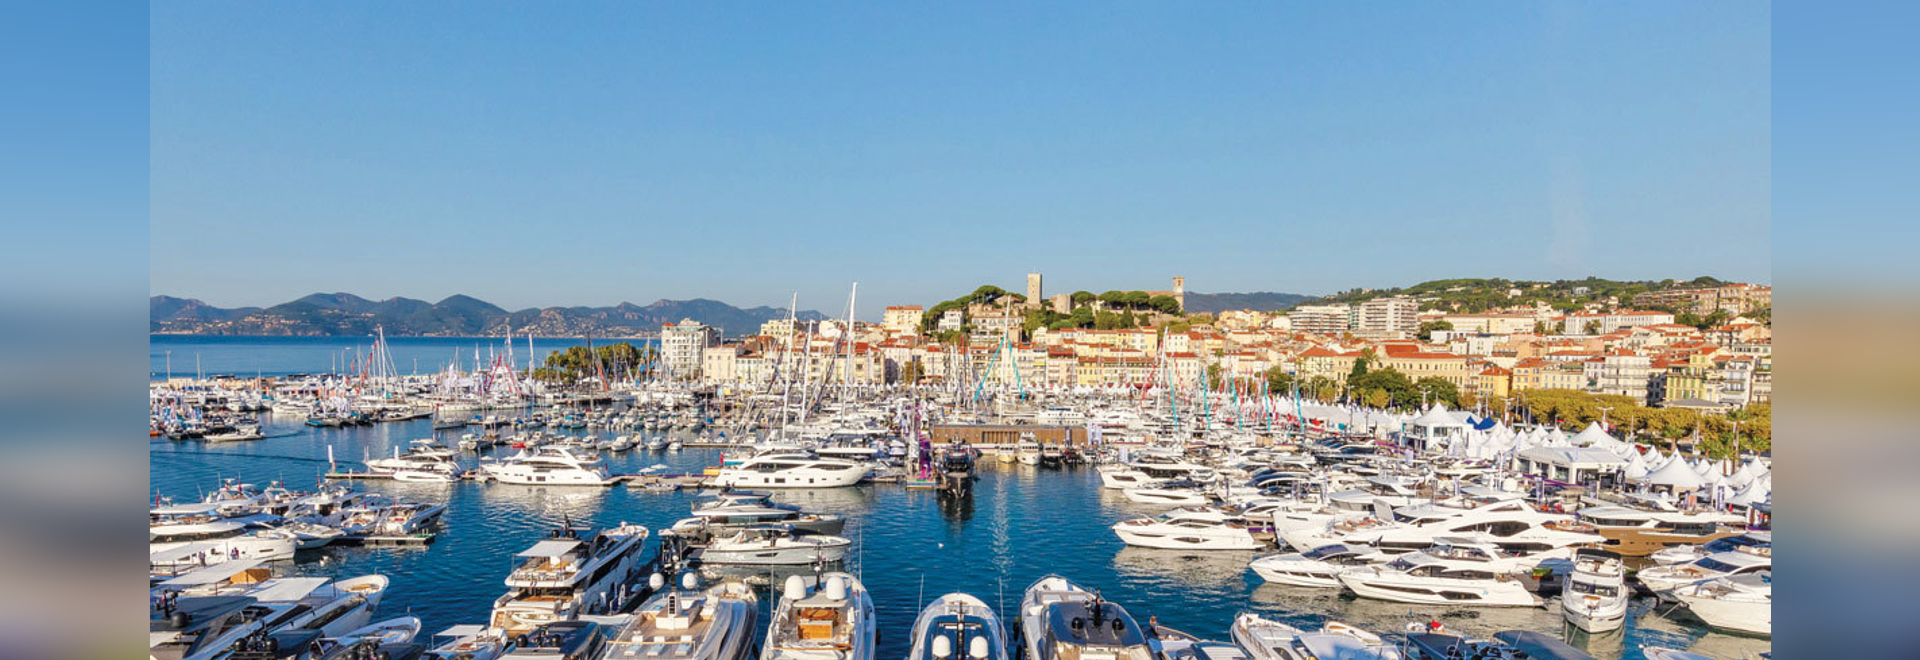 The Cannes show is Europe's biggest on-water showcase